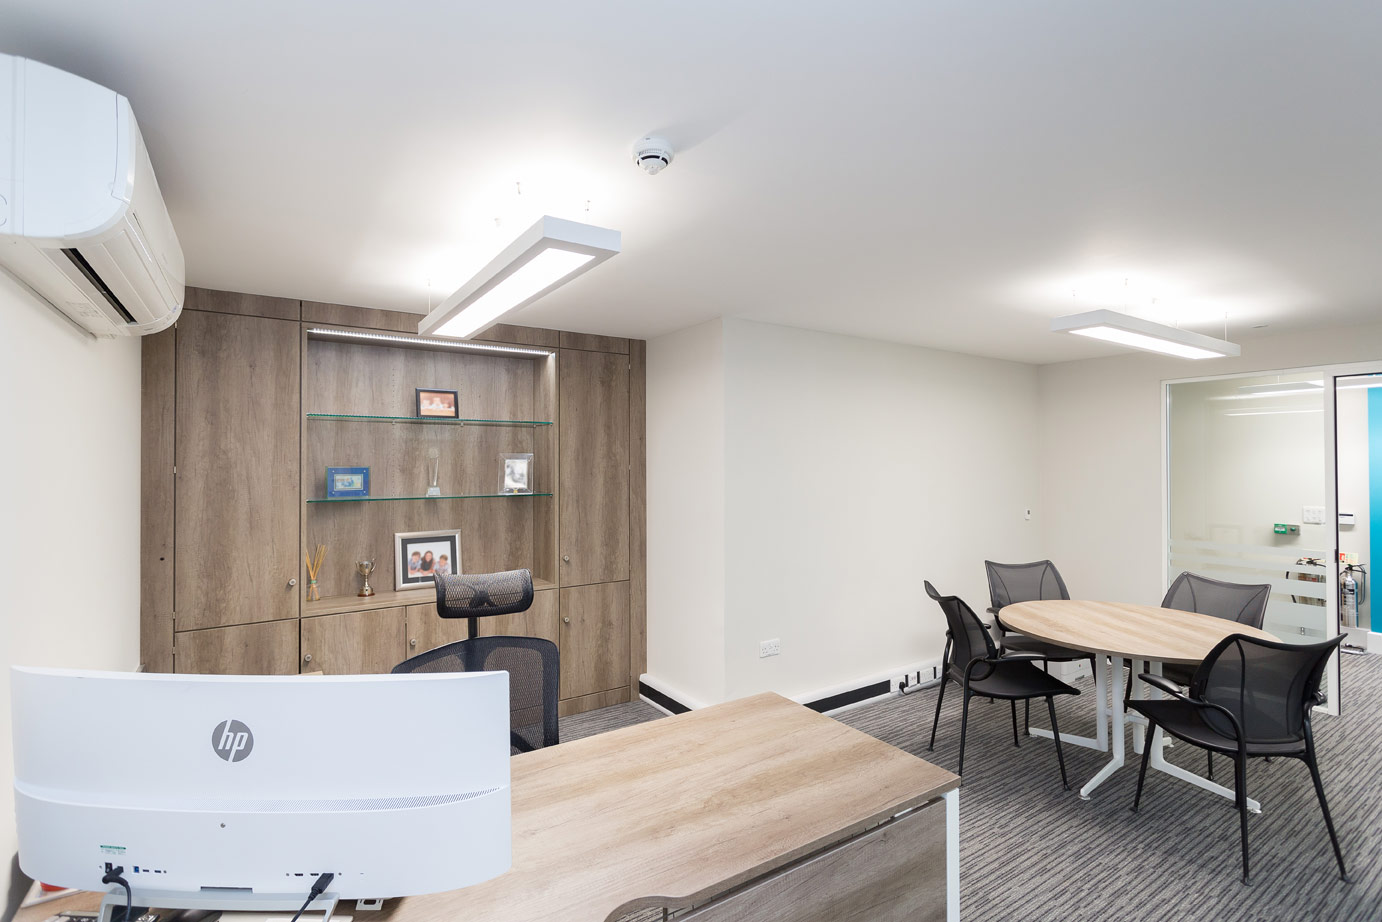 bateman-groundworks-director-office-design